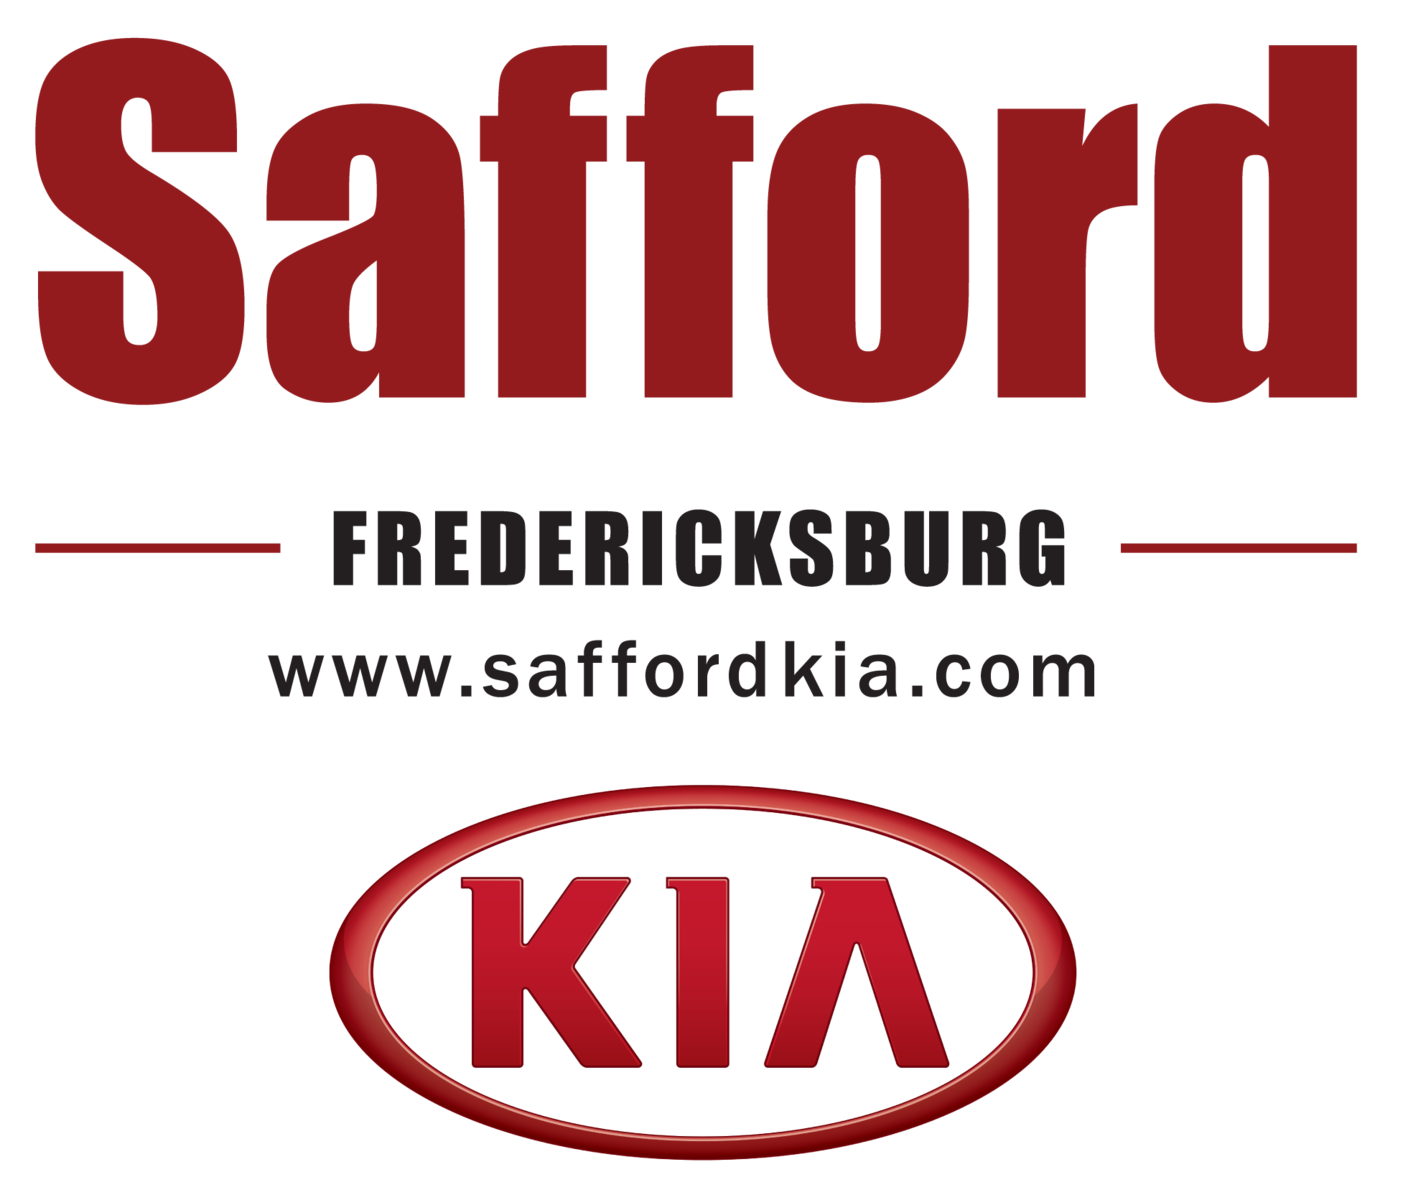 Safford Kia Of Fredericksburg   Fredericksburg, VA: Read Consumer Reviews,  Browse Used And New Cars For Sale